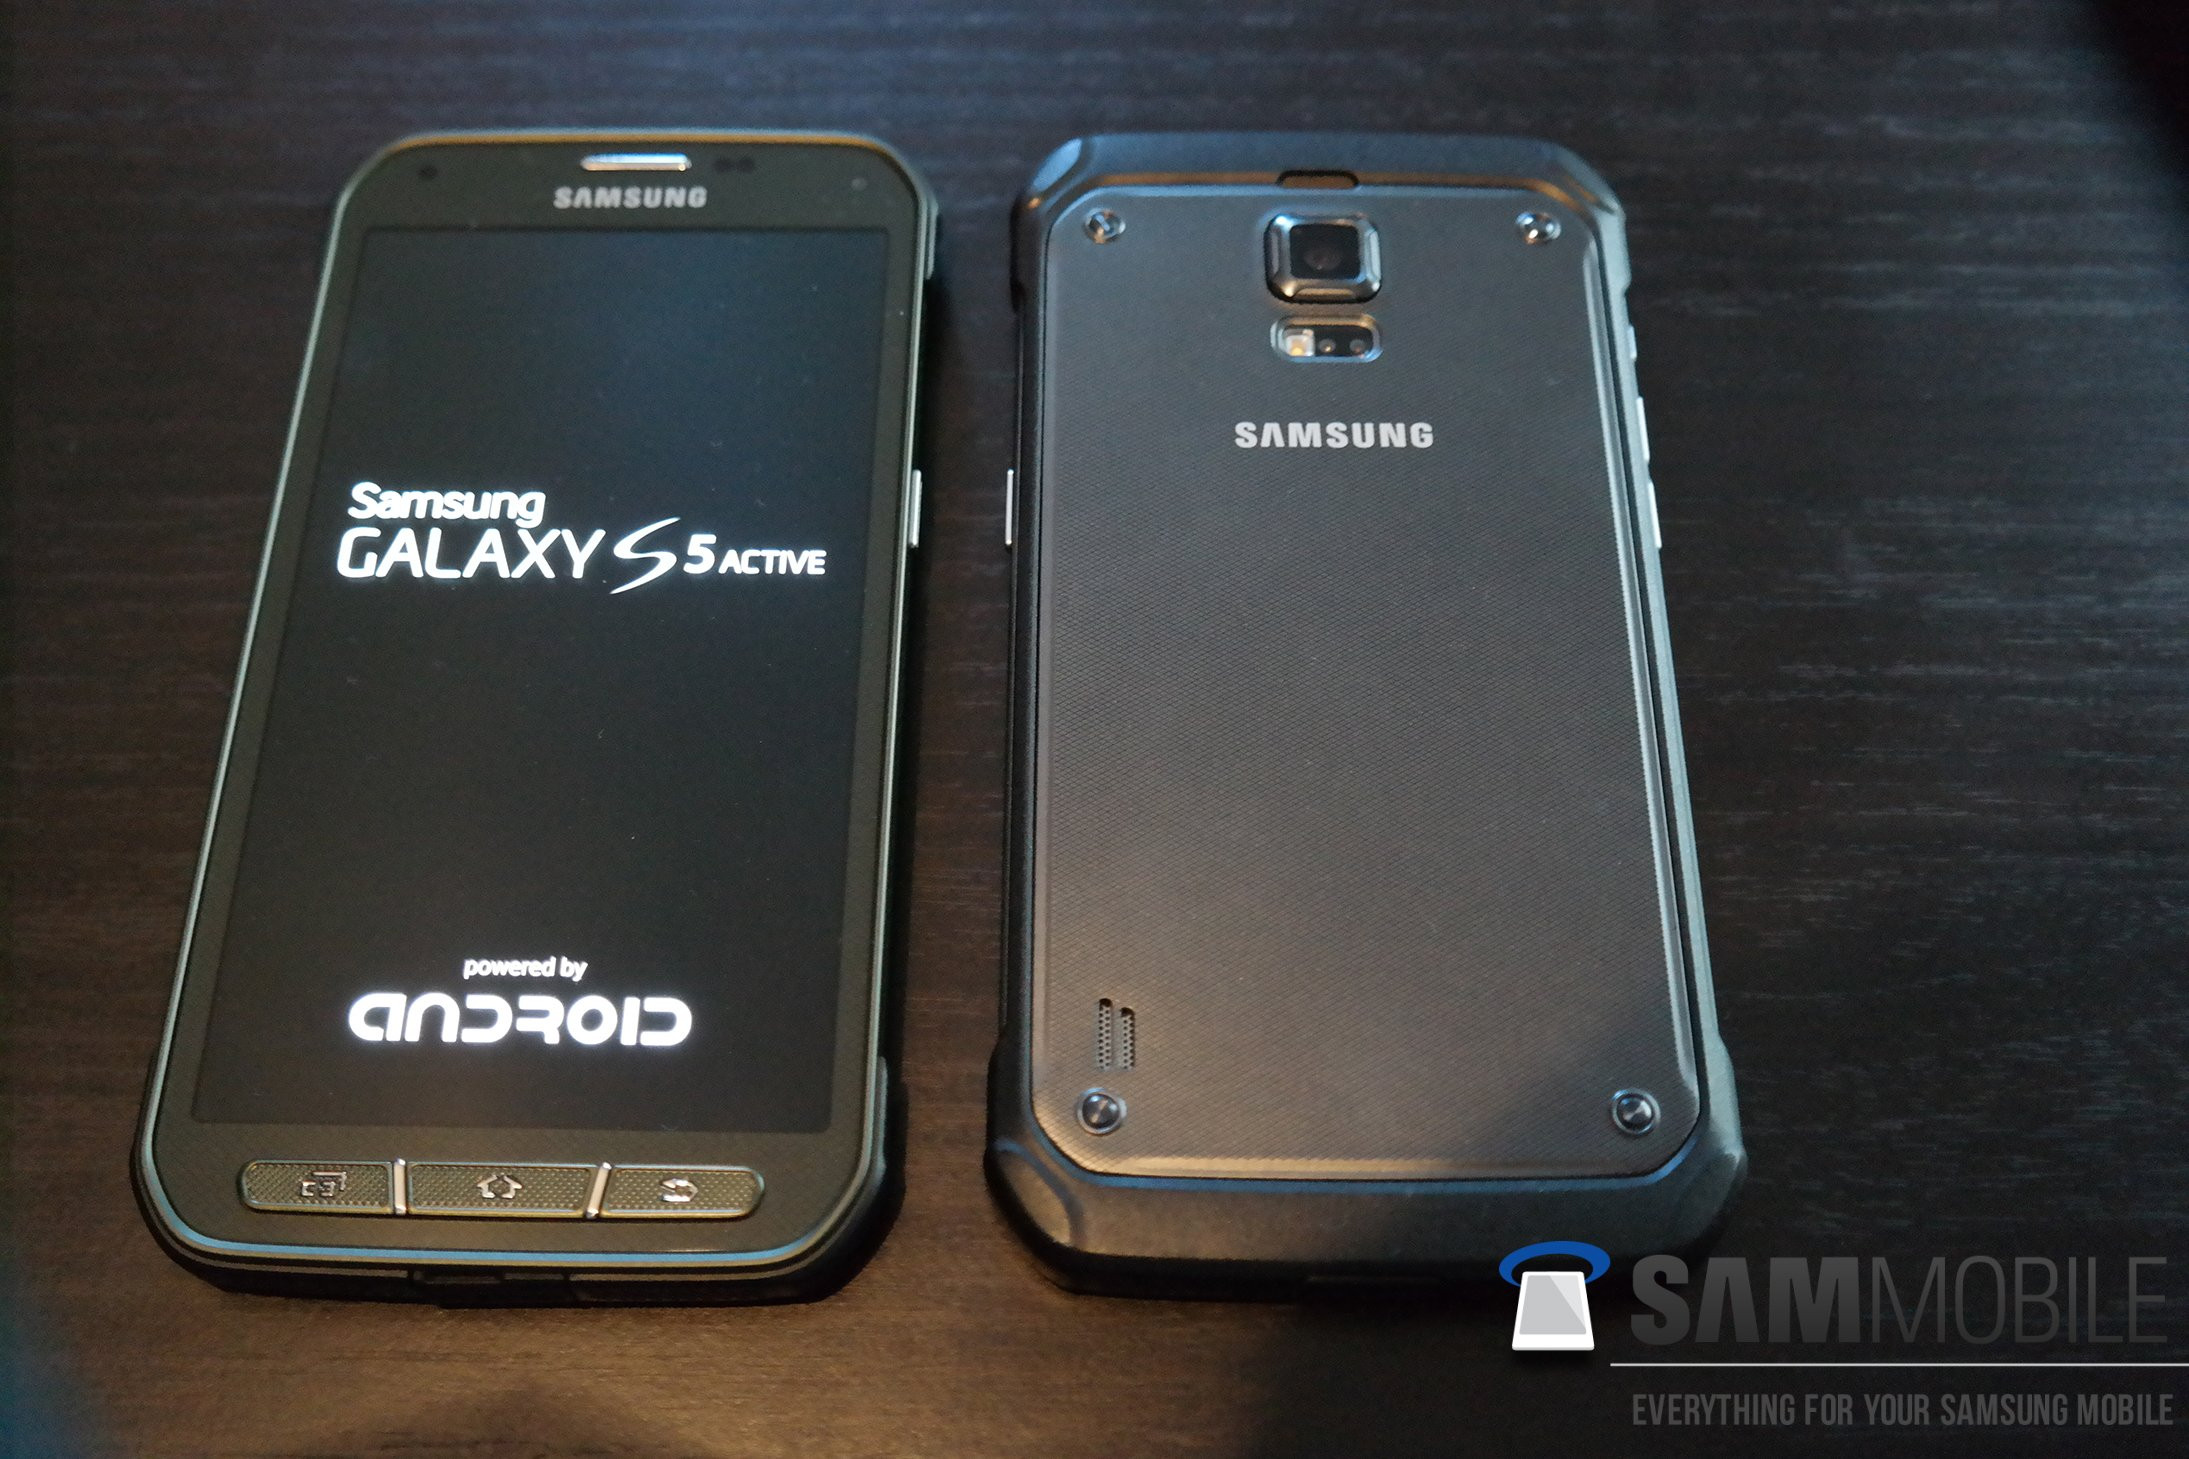 Exclusive Samsung Galaxy S5 Active For Europe